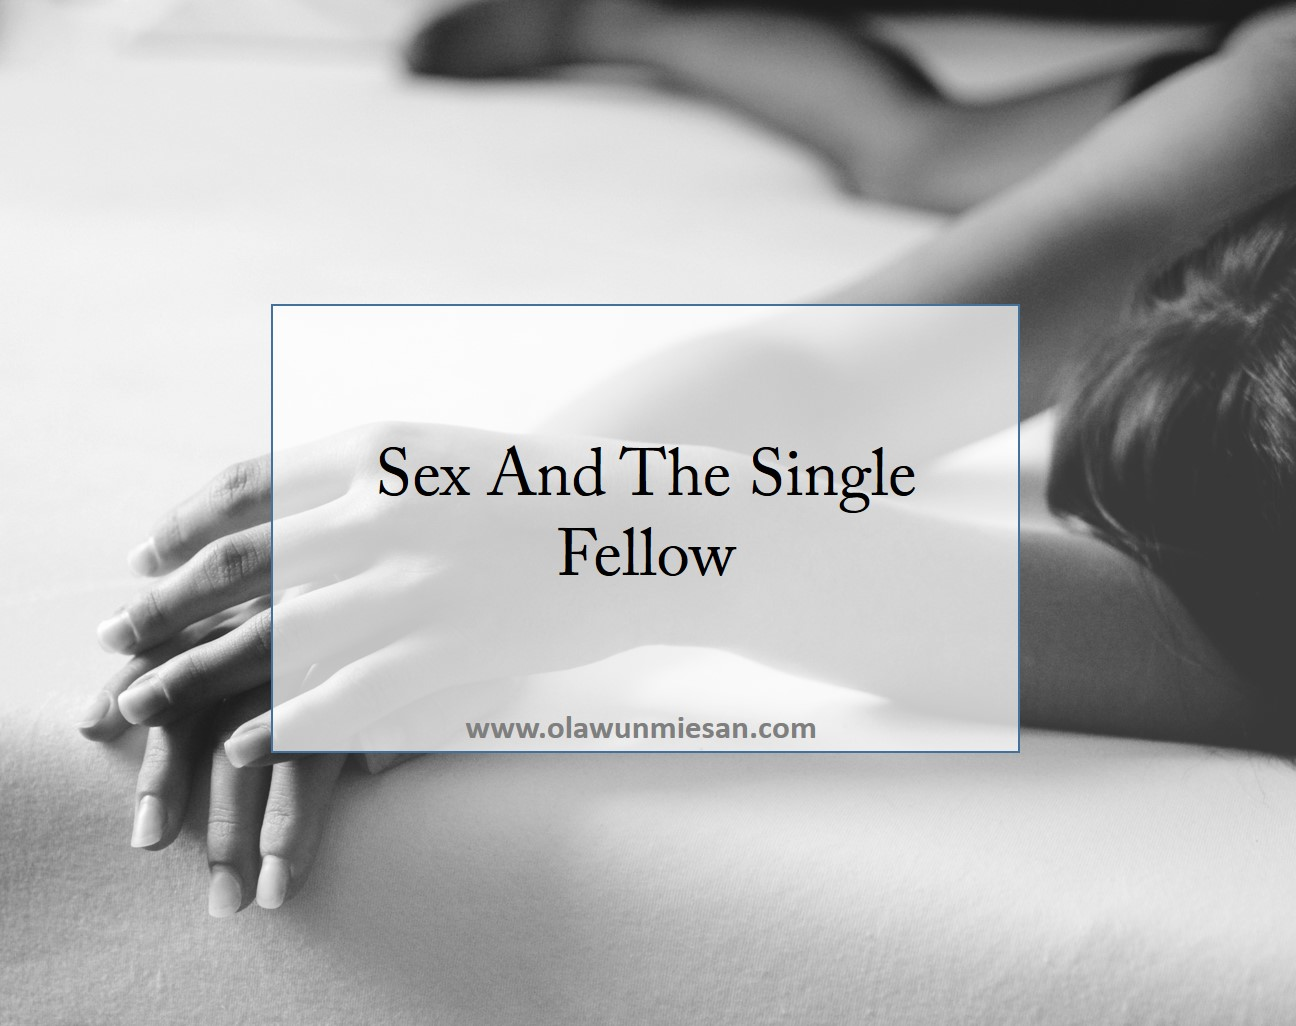 SEX AND THE SINGLE FELLOW